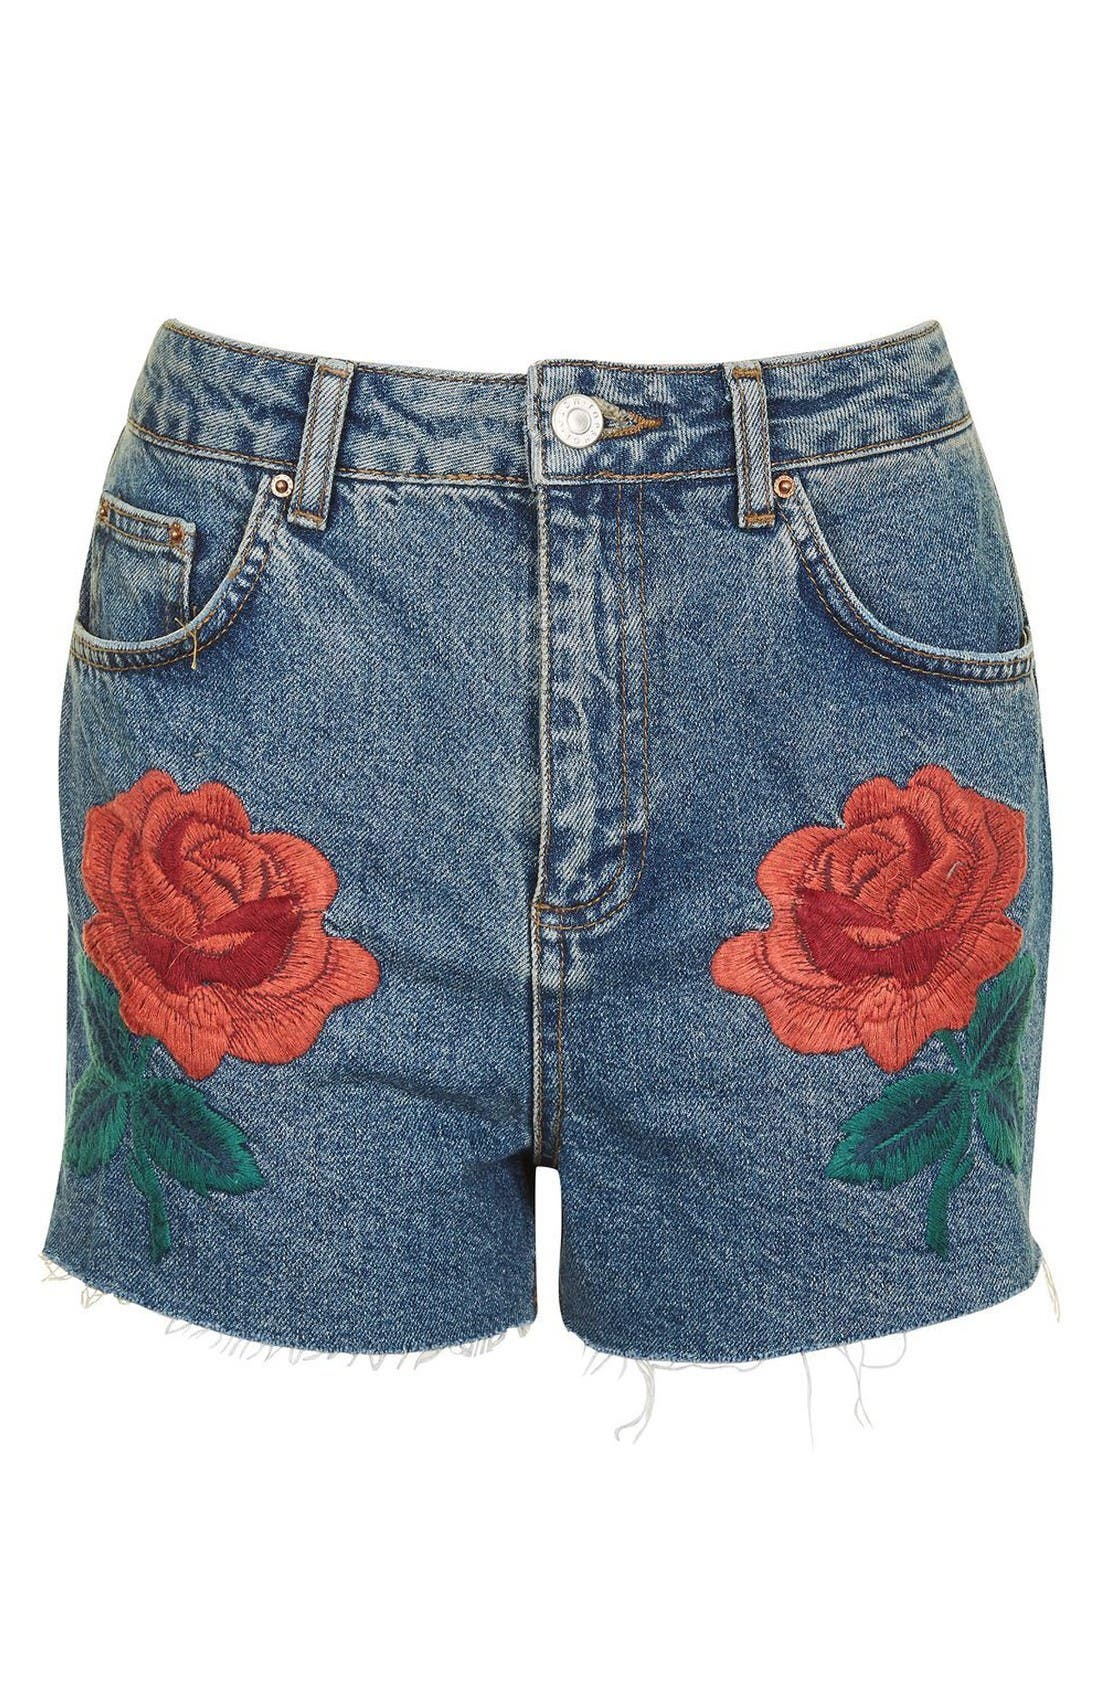 Rose Embroidered Mom Shorts,                             Main thumbnail 1, color,                             Mid Denim